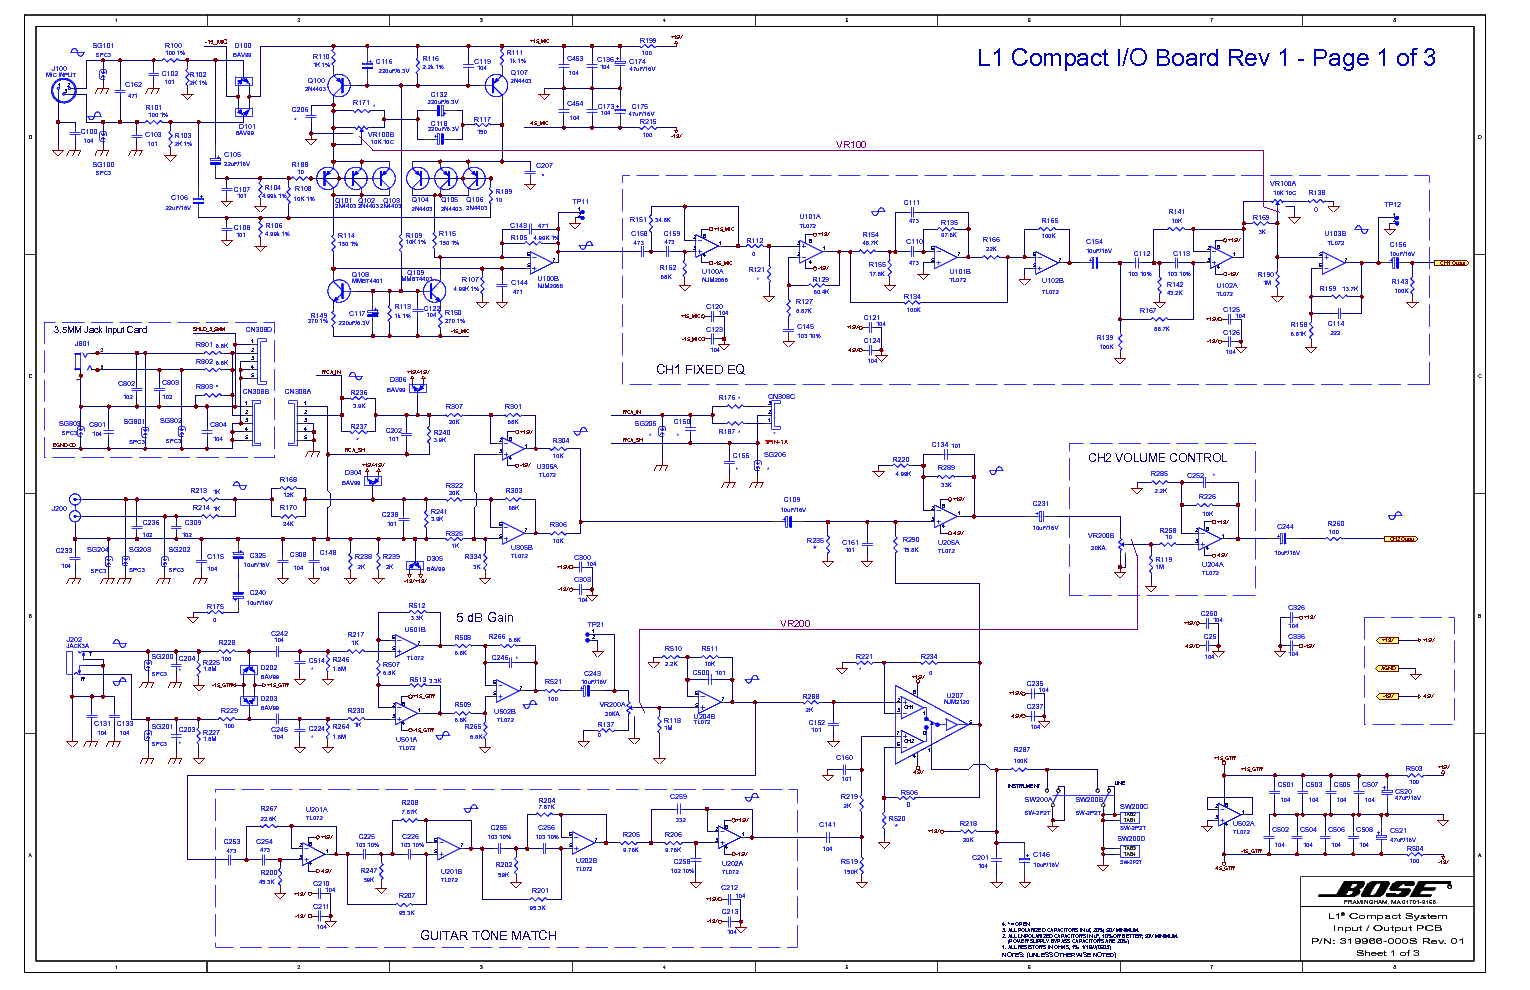 bose l1 compact owners manual